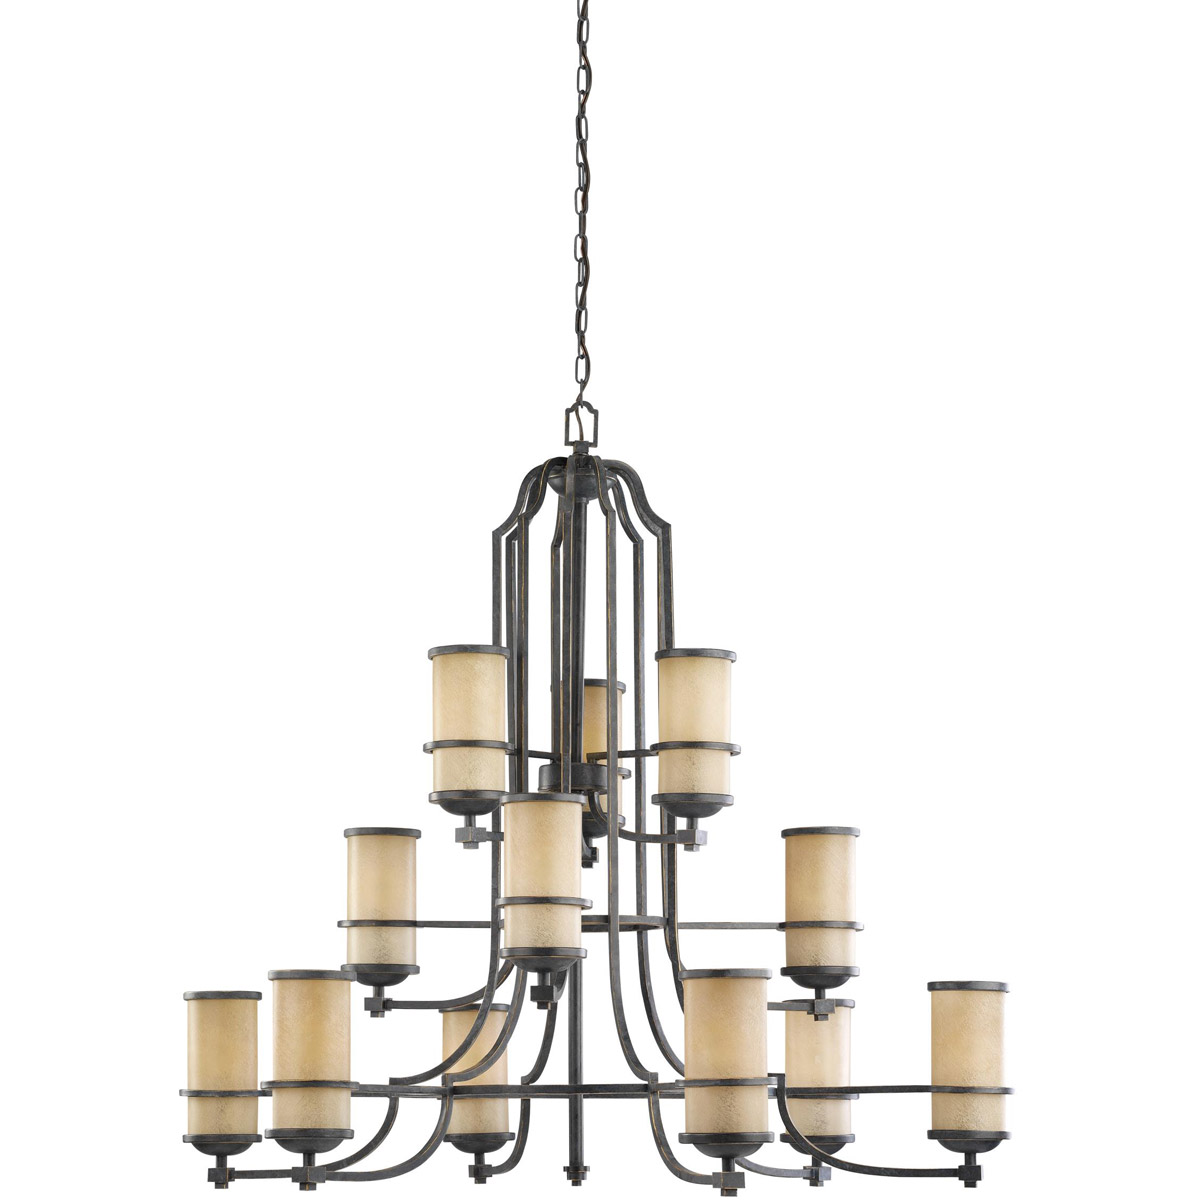 Sea Gull Roslyn 12 Light Chandelier Multi-Tier in Flemish Bronze 31523BLE-845 photo